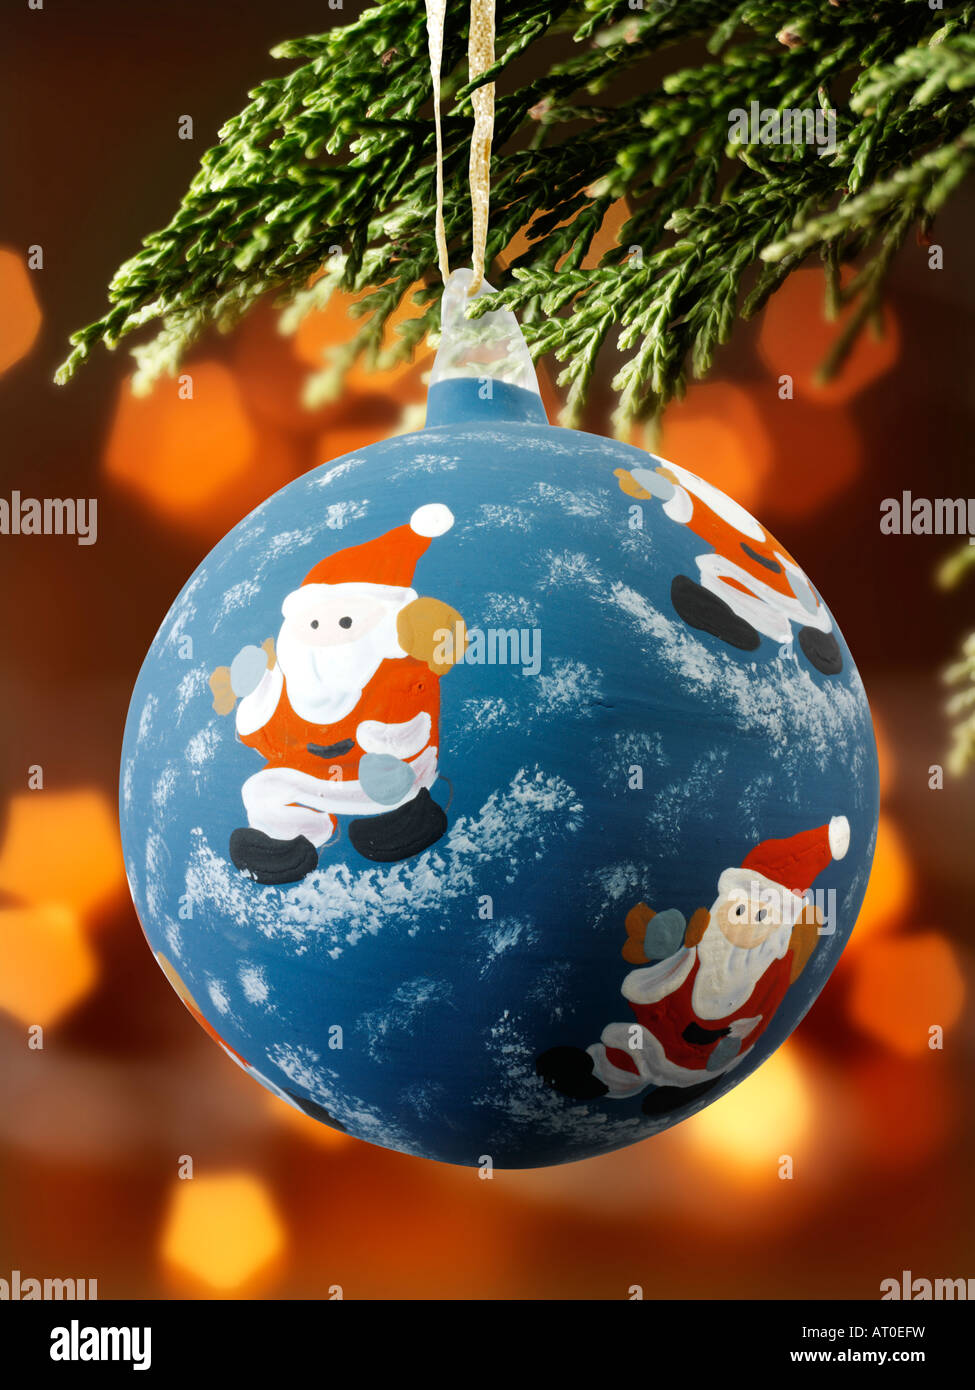 'christmas baubles' - Stock Image